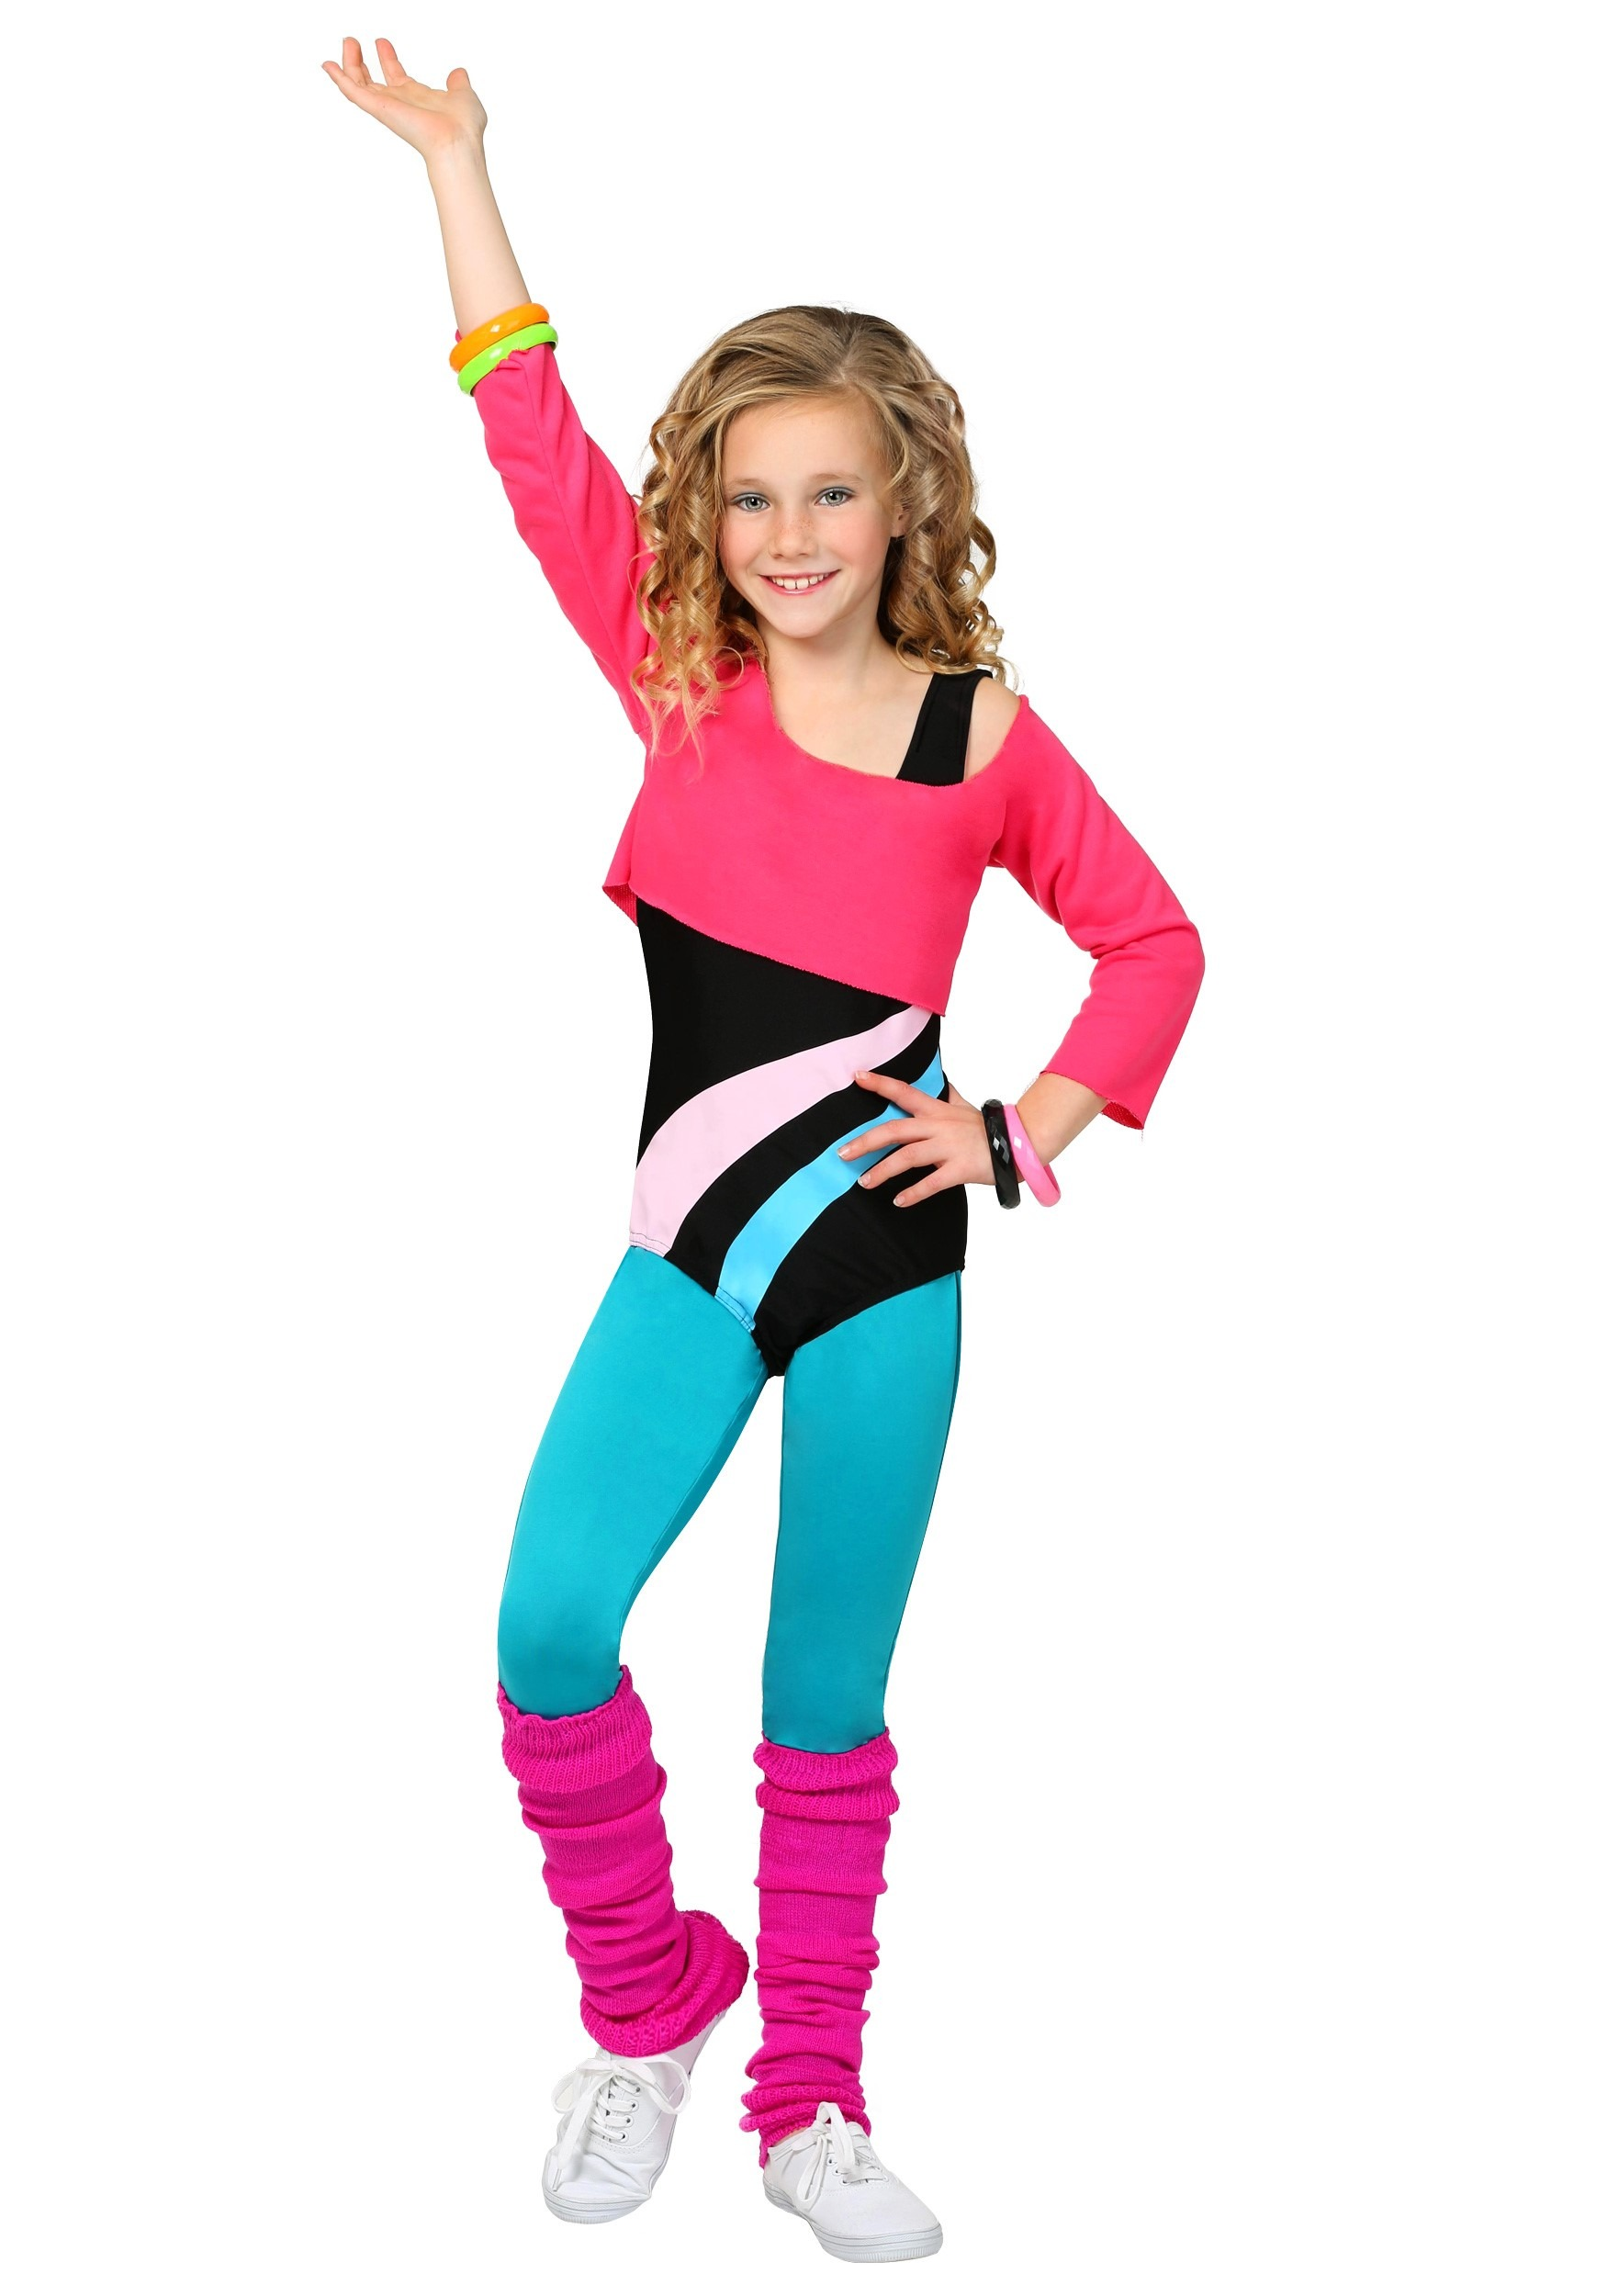 0404e58b9a 1980s Costumes   Outfits for Adults and Kids